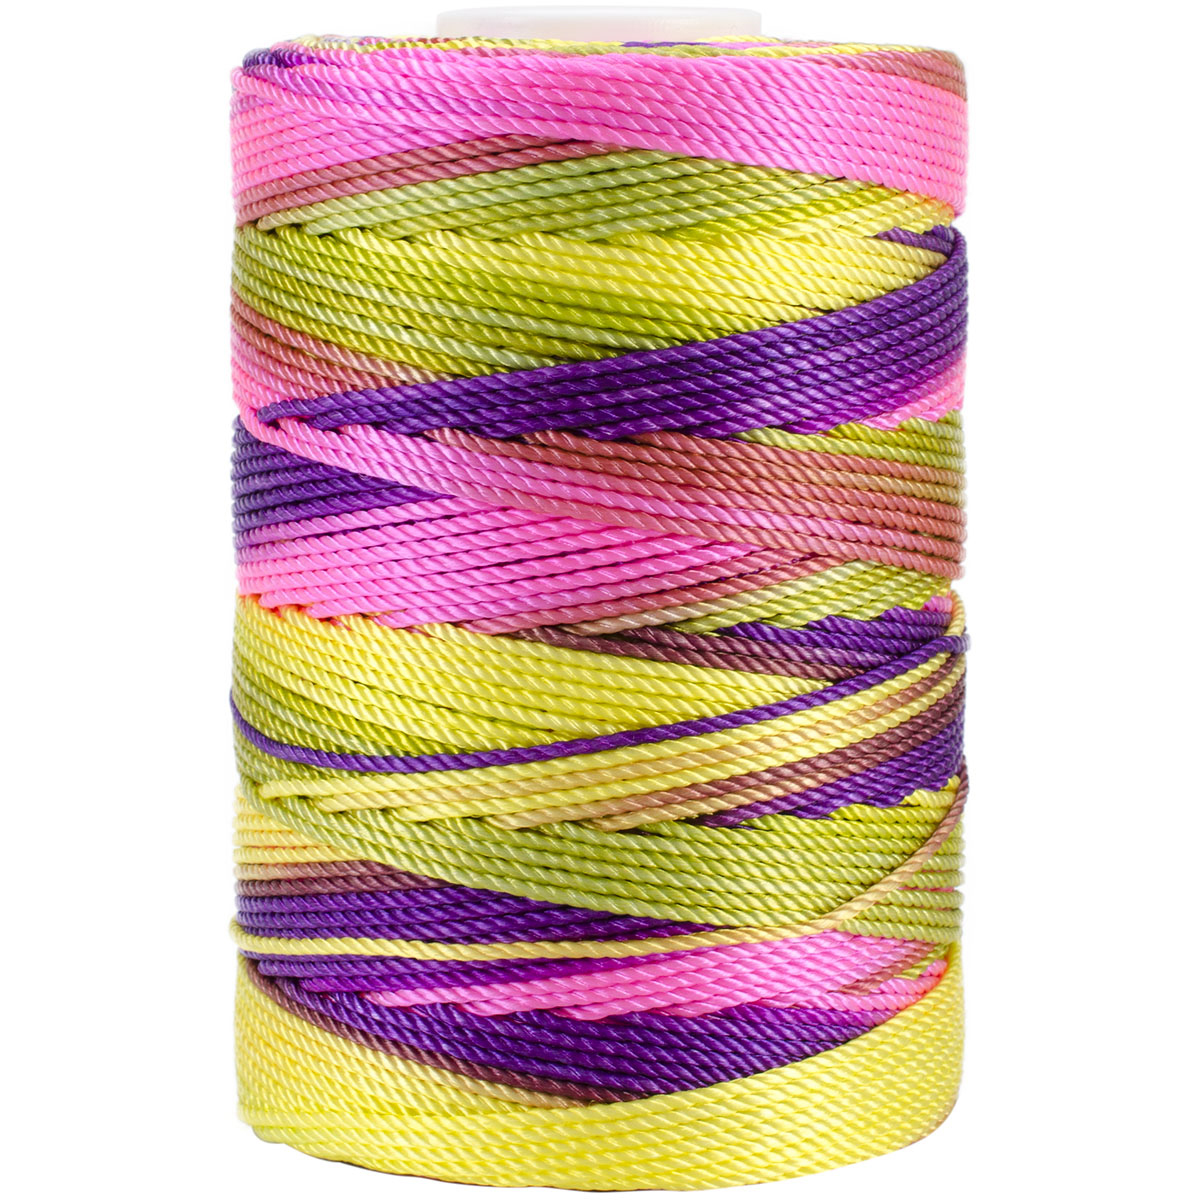 Crocheting Thread : Home ? Crochet Thread Discount Crochet Thread ? More Brands of ...